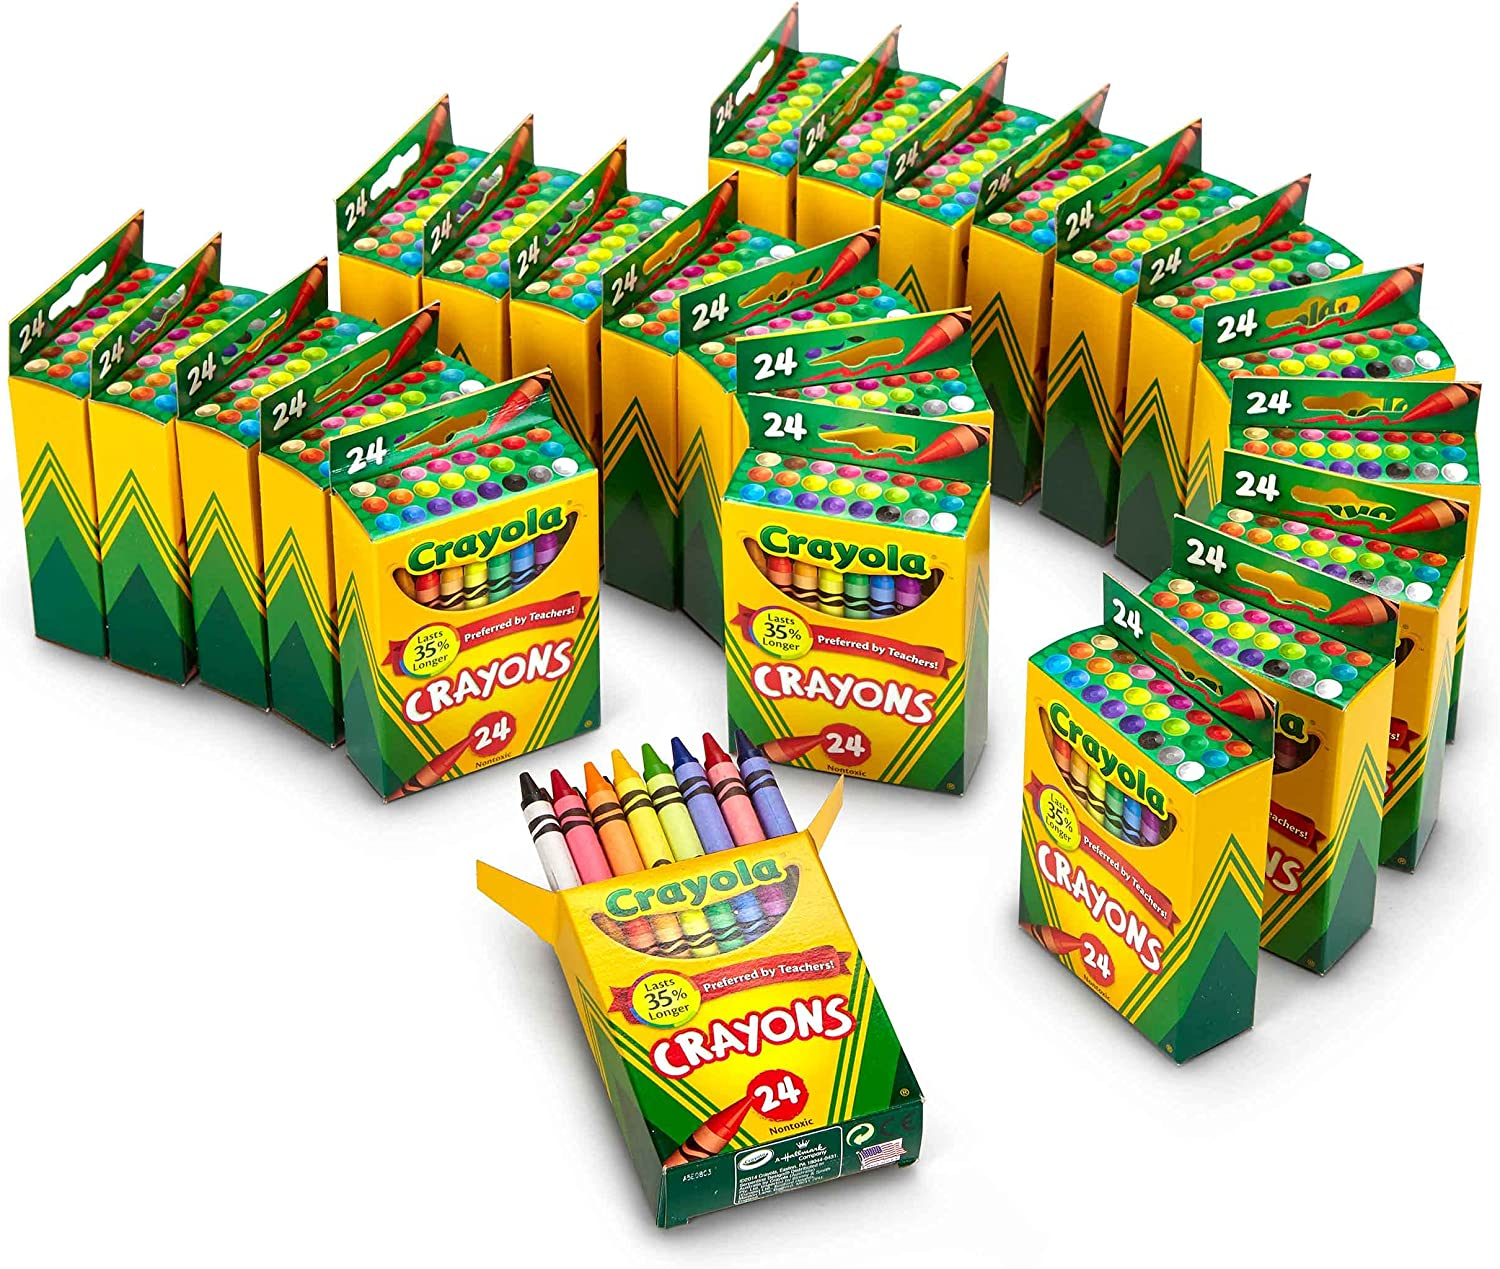 Crayola Crayons Bulk Sale special Discount mail order price Classroom Supplies 24 Teachers Crayon for